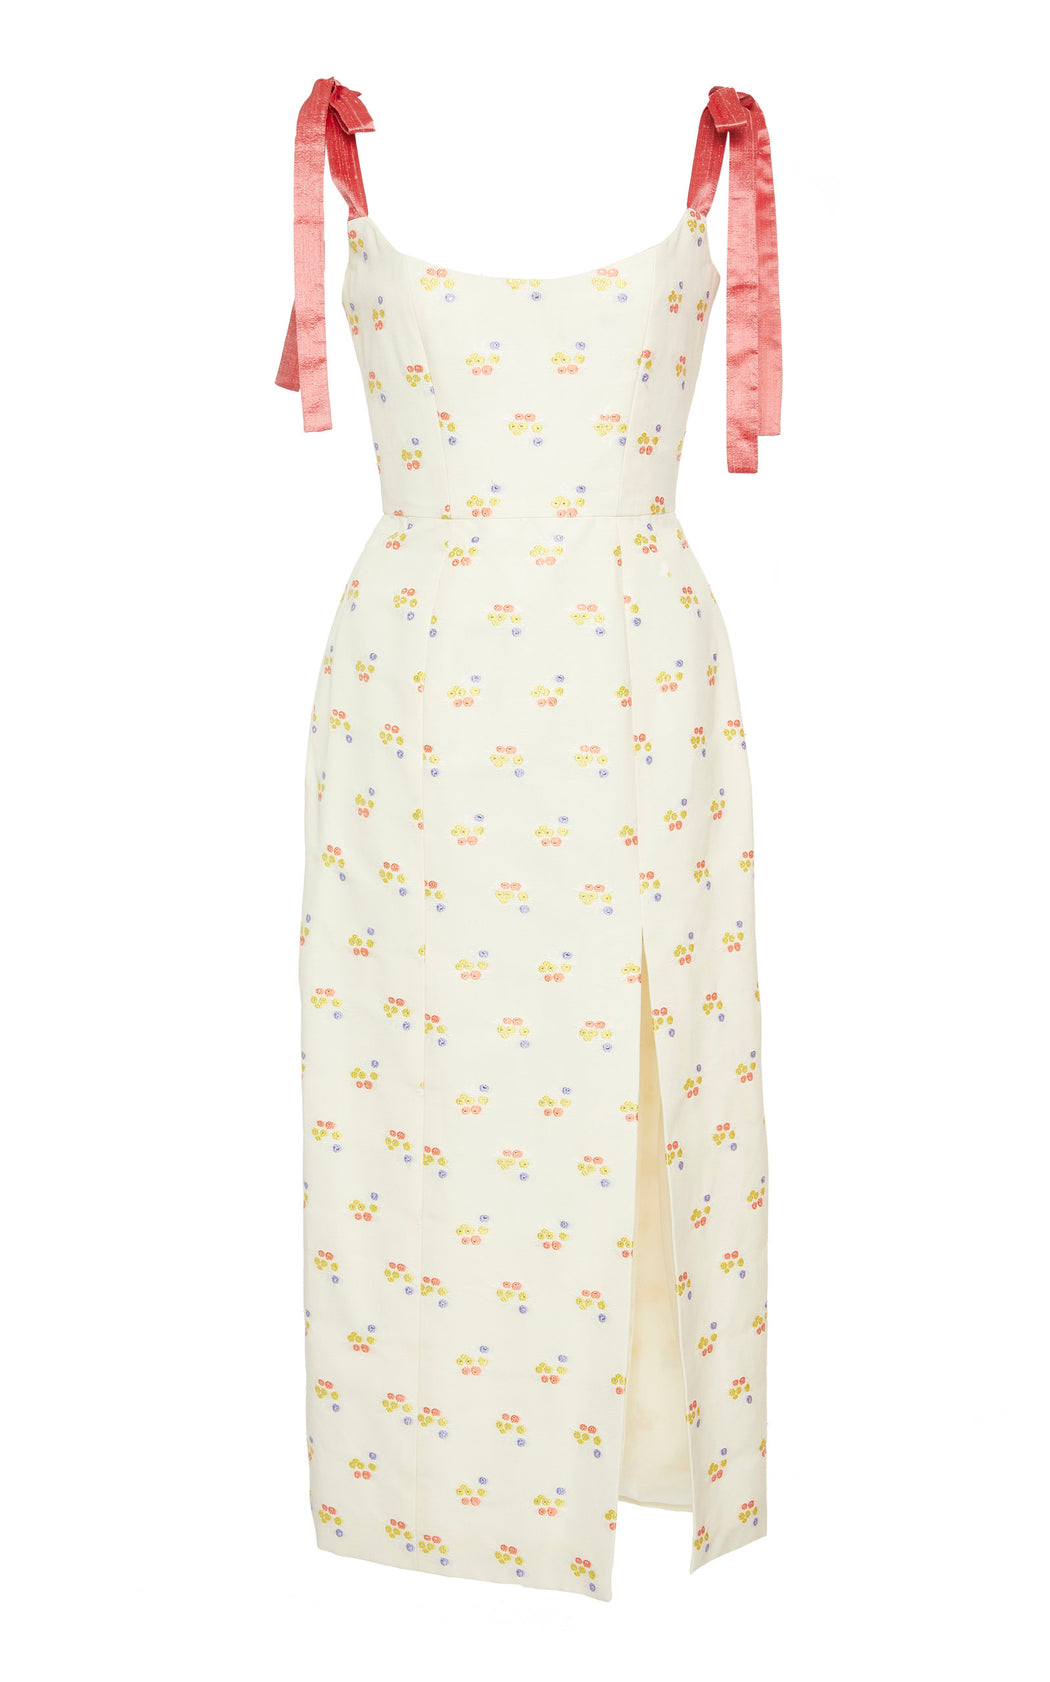 Darcy Floral Embroidered Corset Dress